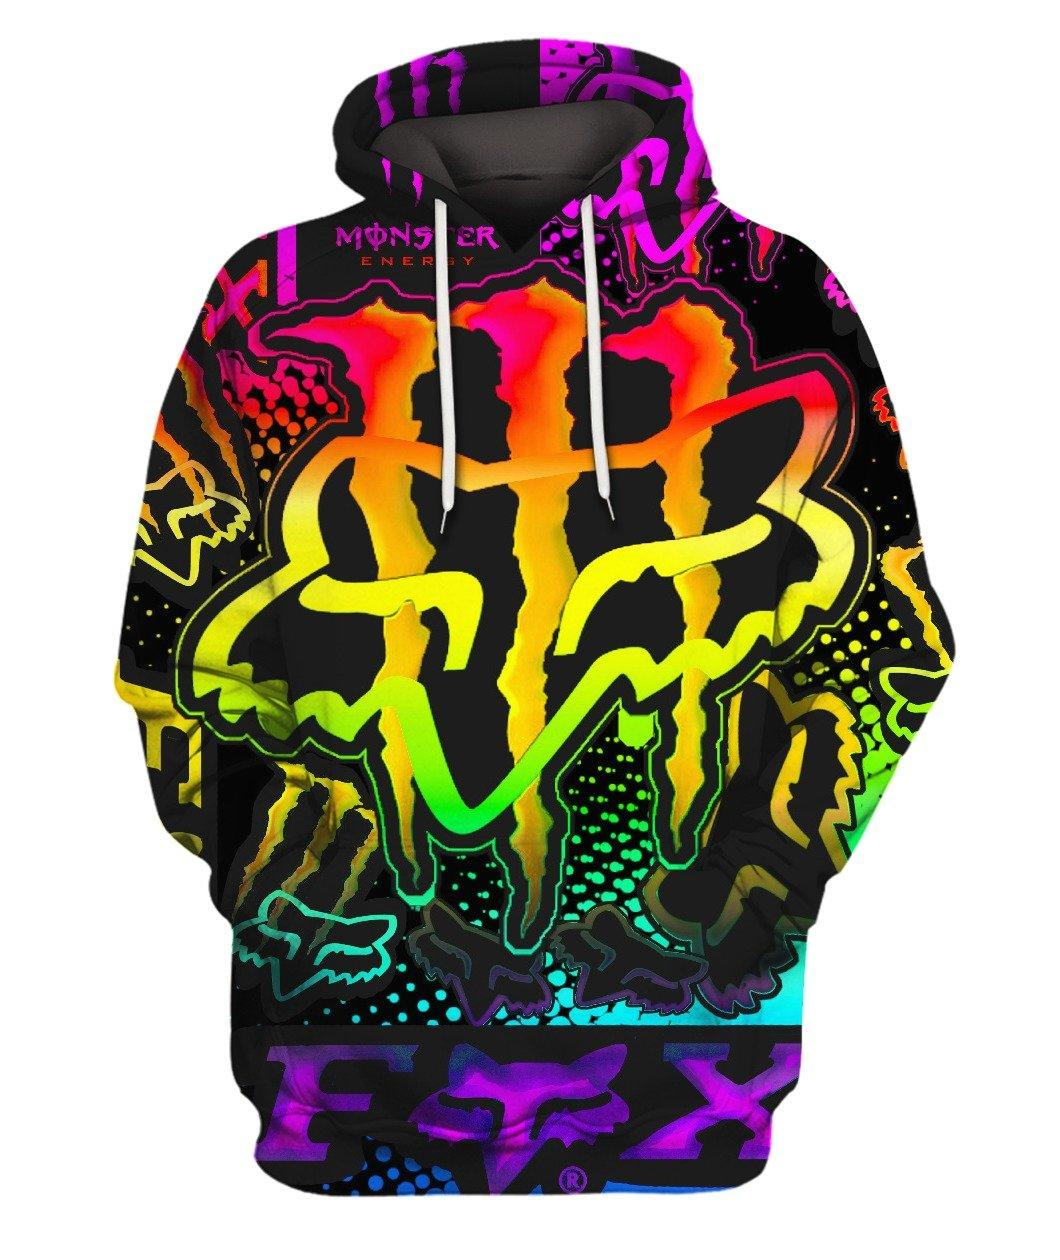 Full Fx Monster Rainbow Full 3d 3d Graphic Printed Tshirt Hoodie Up To 5xl